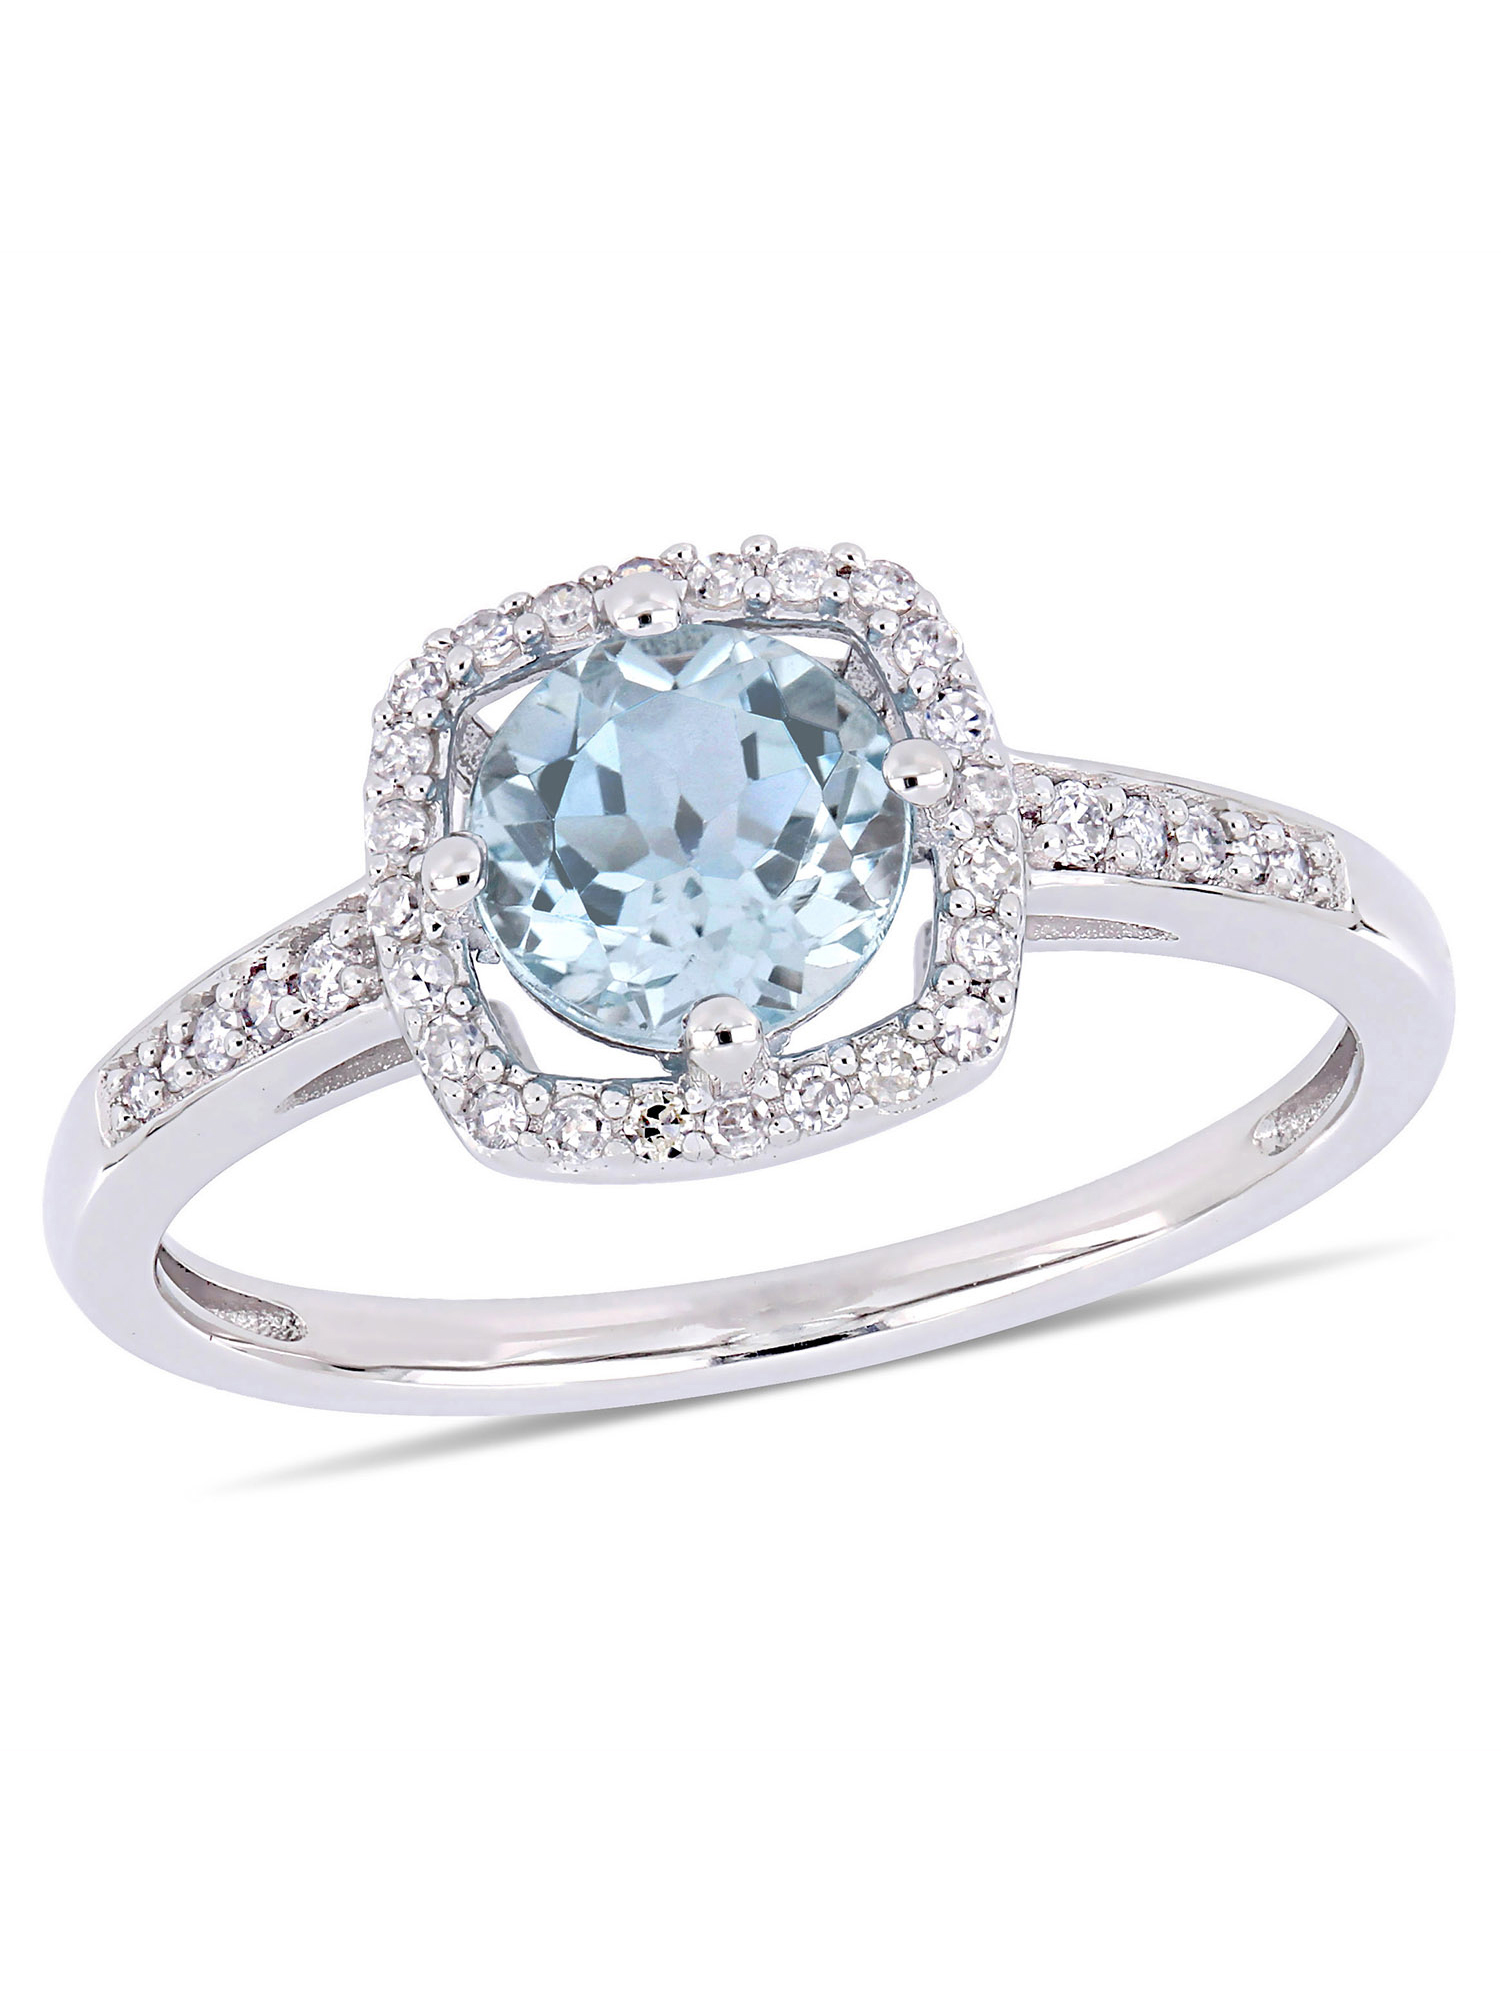 Tangelo 1 Carat T.G.W. Sky Blue Topaz and 1 7 Carat T.W. Diamond 10kt White Gold Halo Ring by Delmar